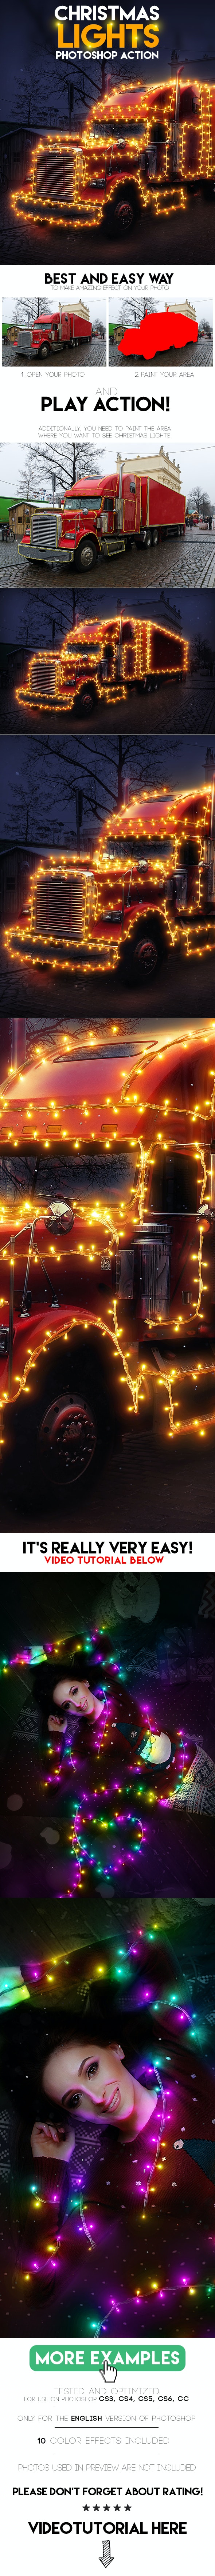 Christmas Lights Photoshop Action - Photo Effects Actions